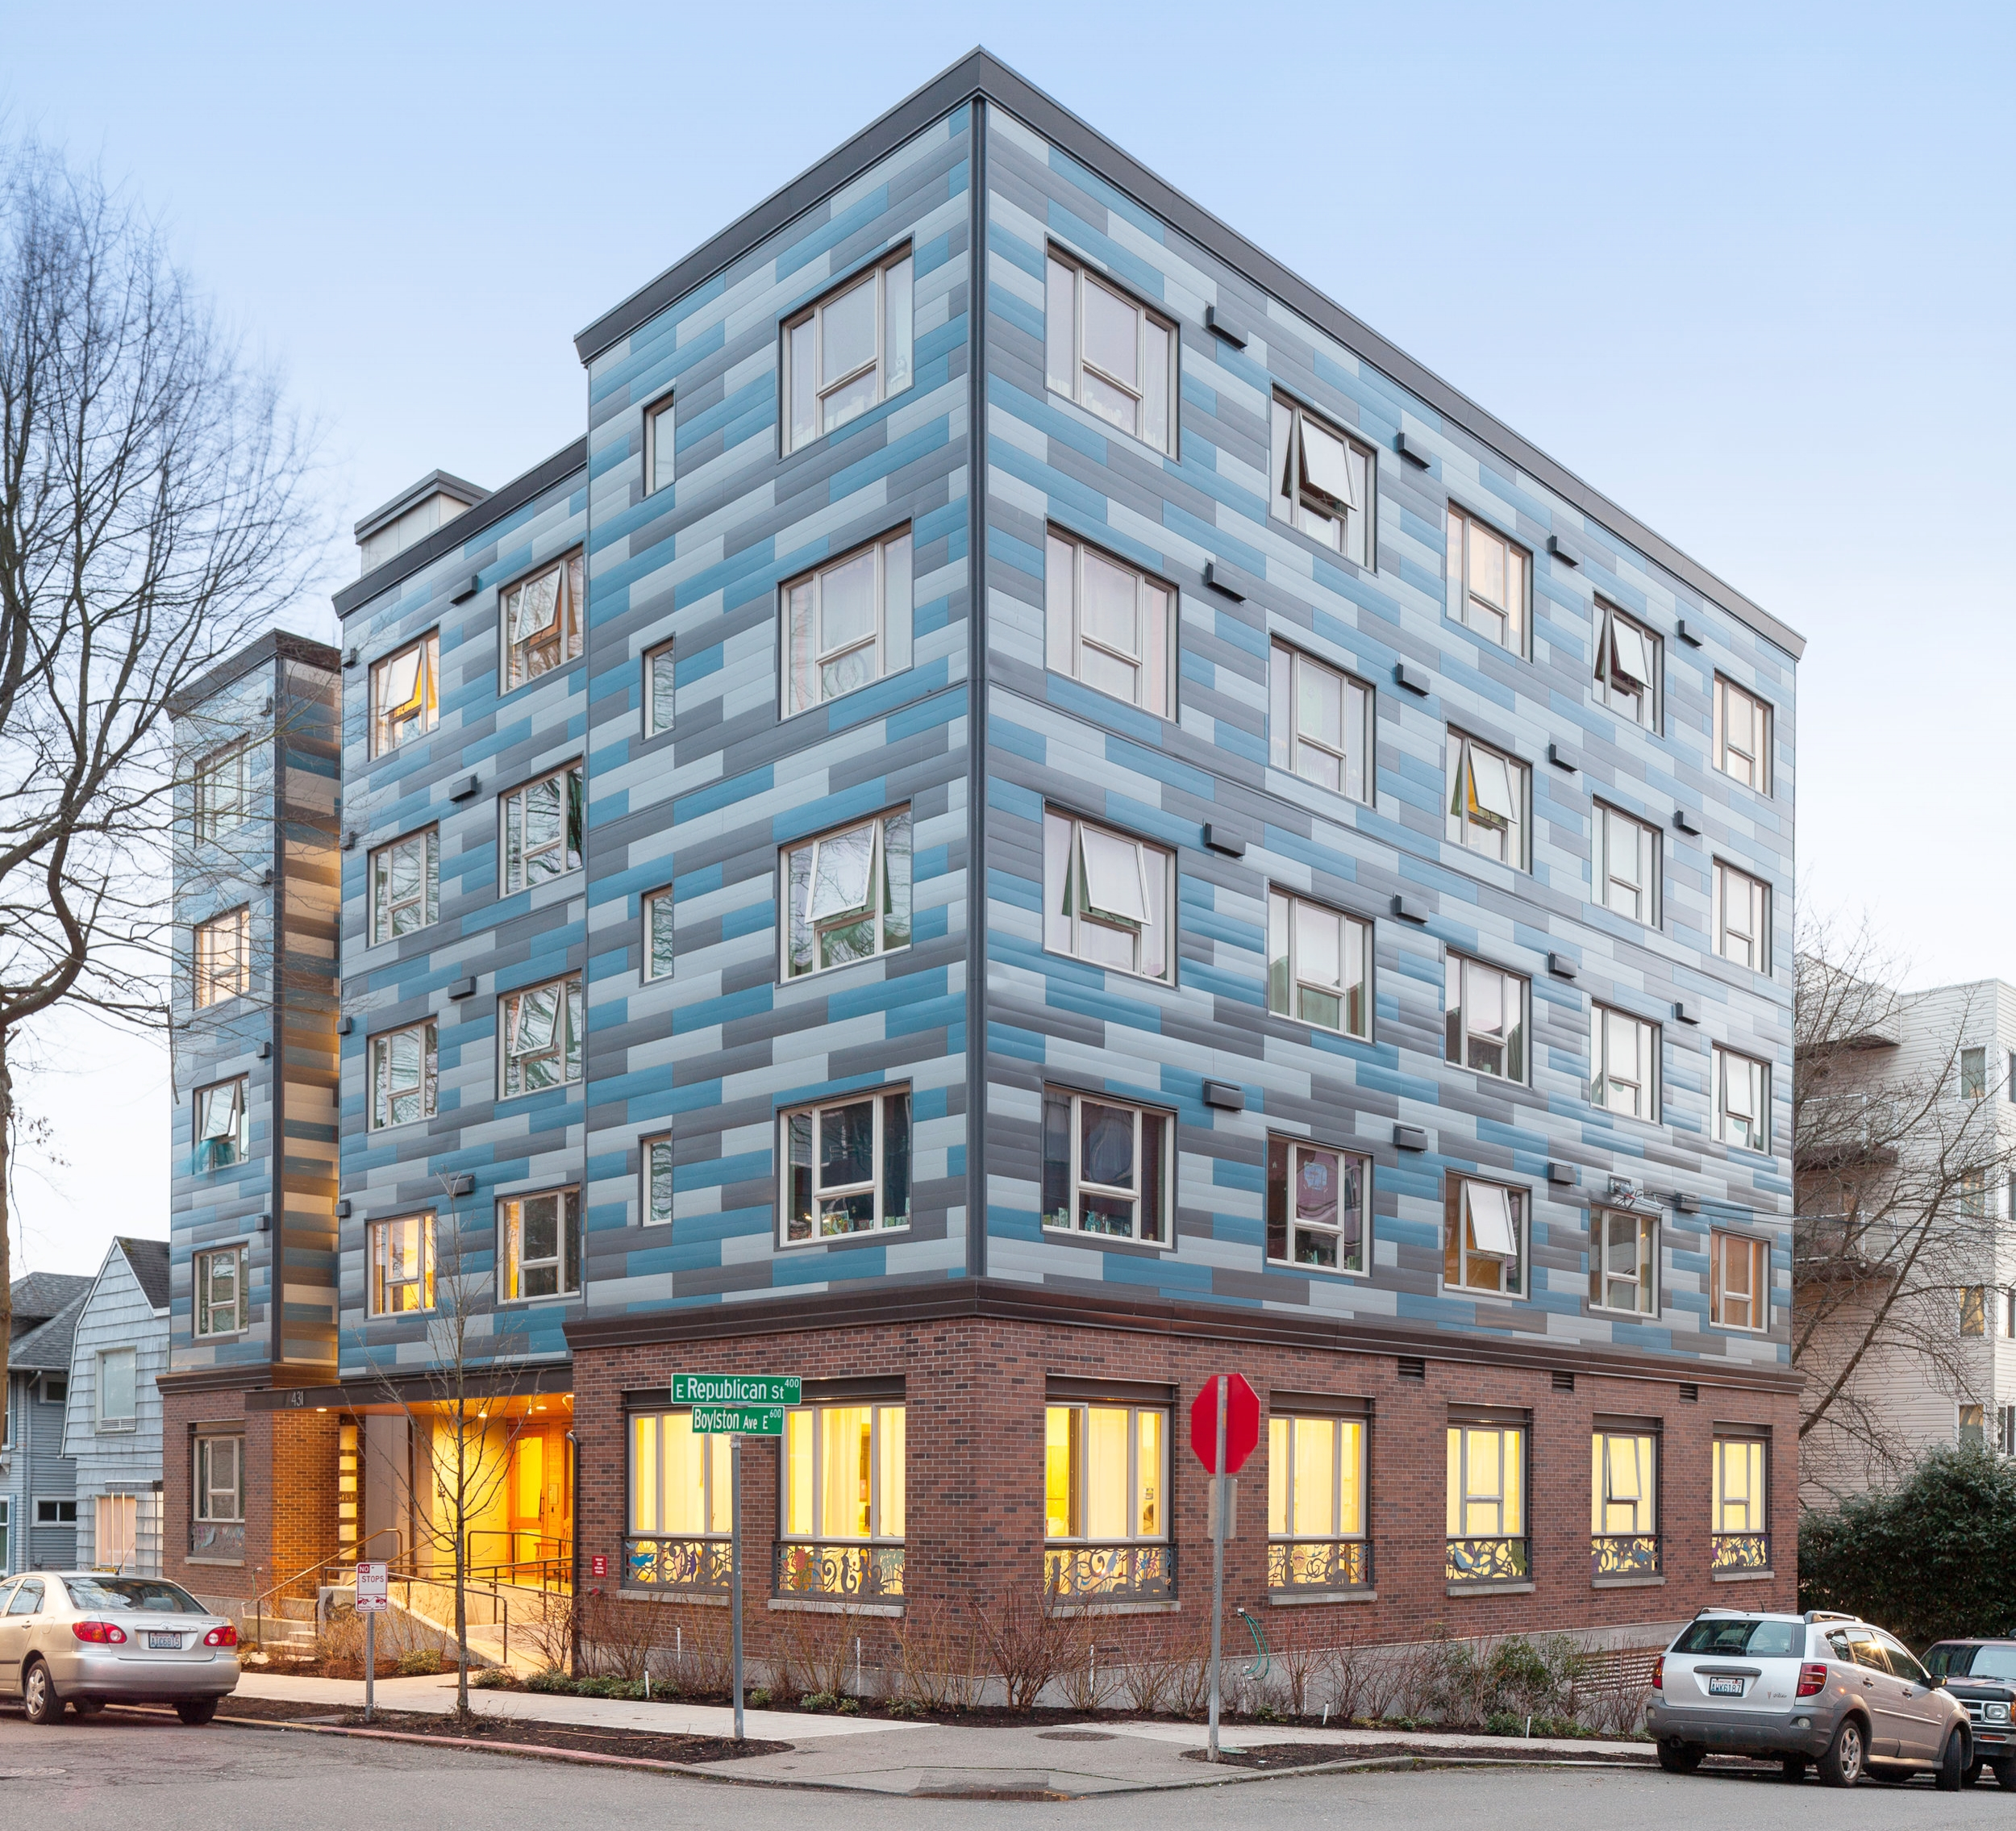 - Client: Community House Mental Health AgencyLocation: Seattle, WashingtonCompletion: 2014Project Size: 44 Units, 21,600 SF